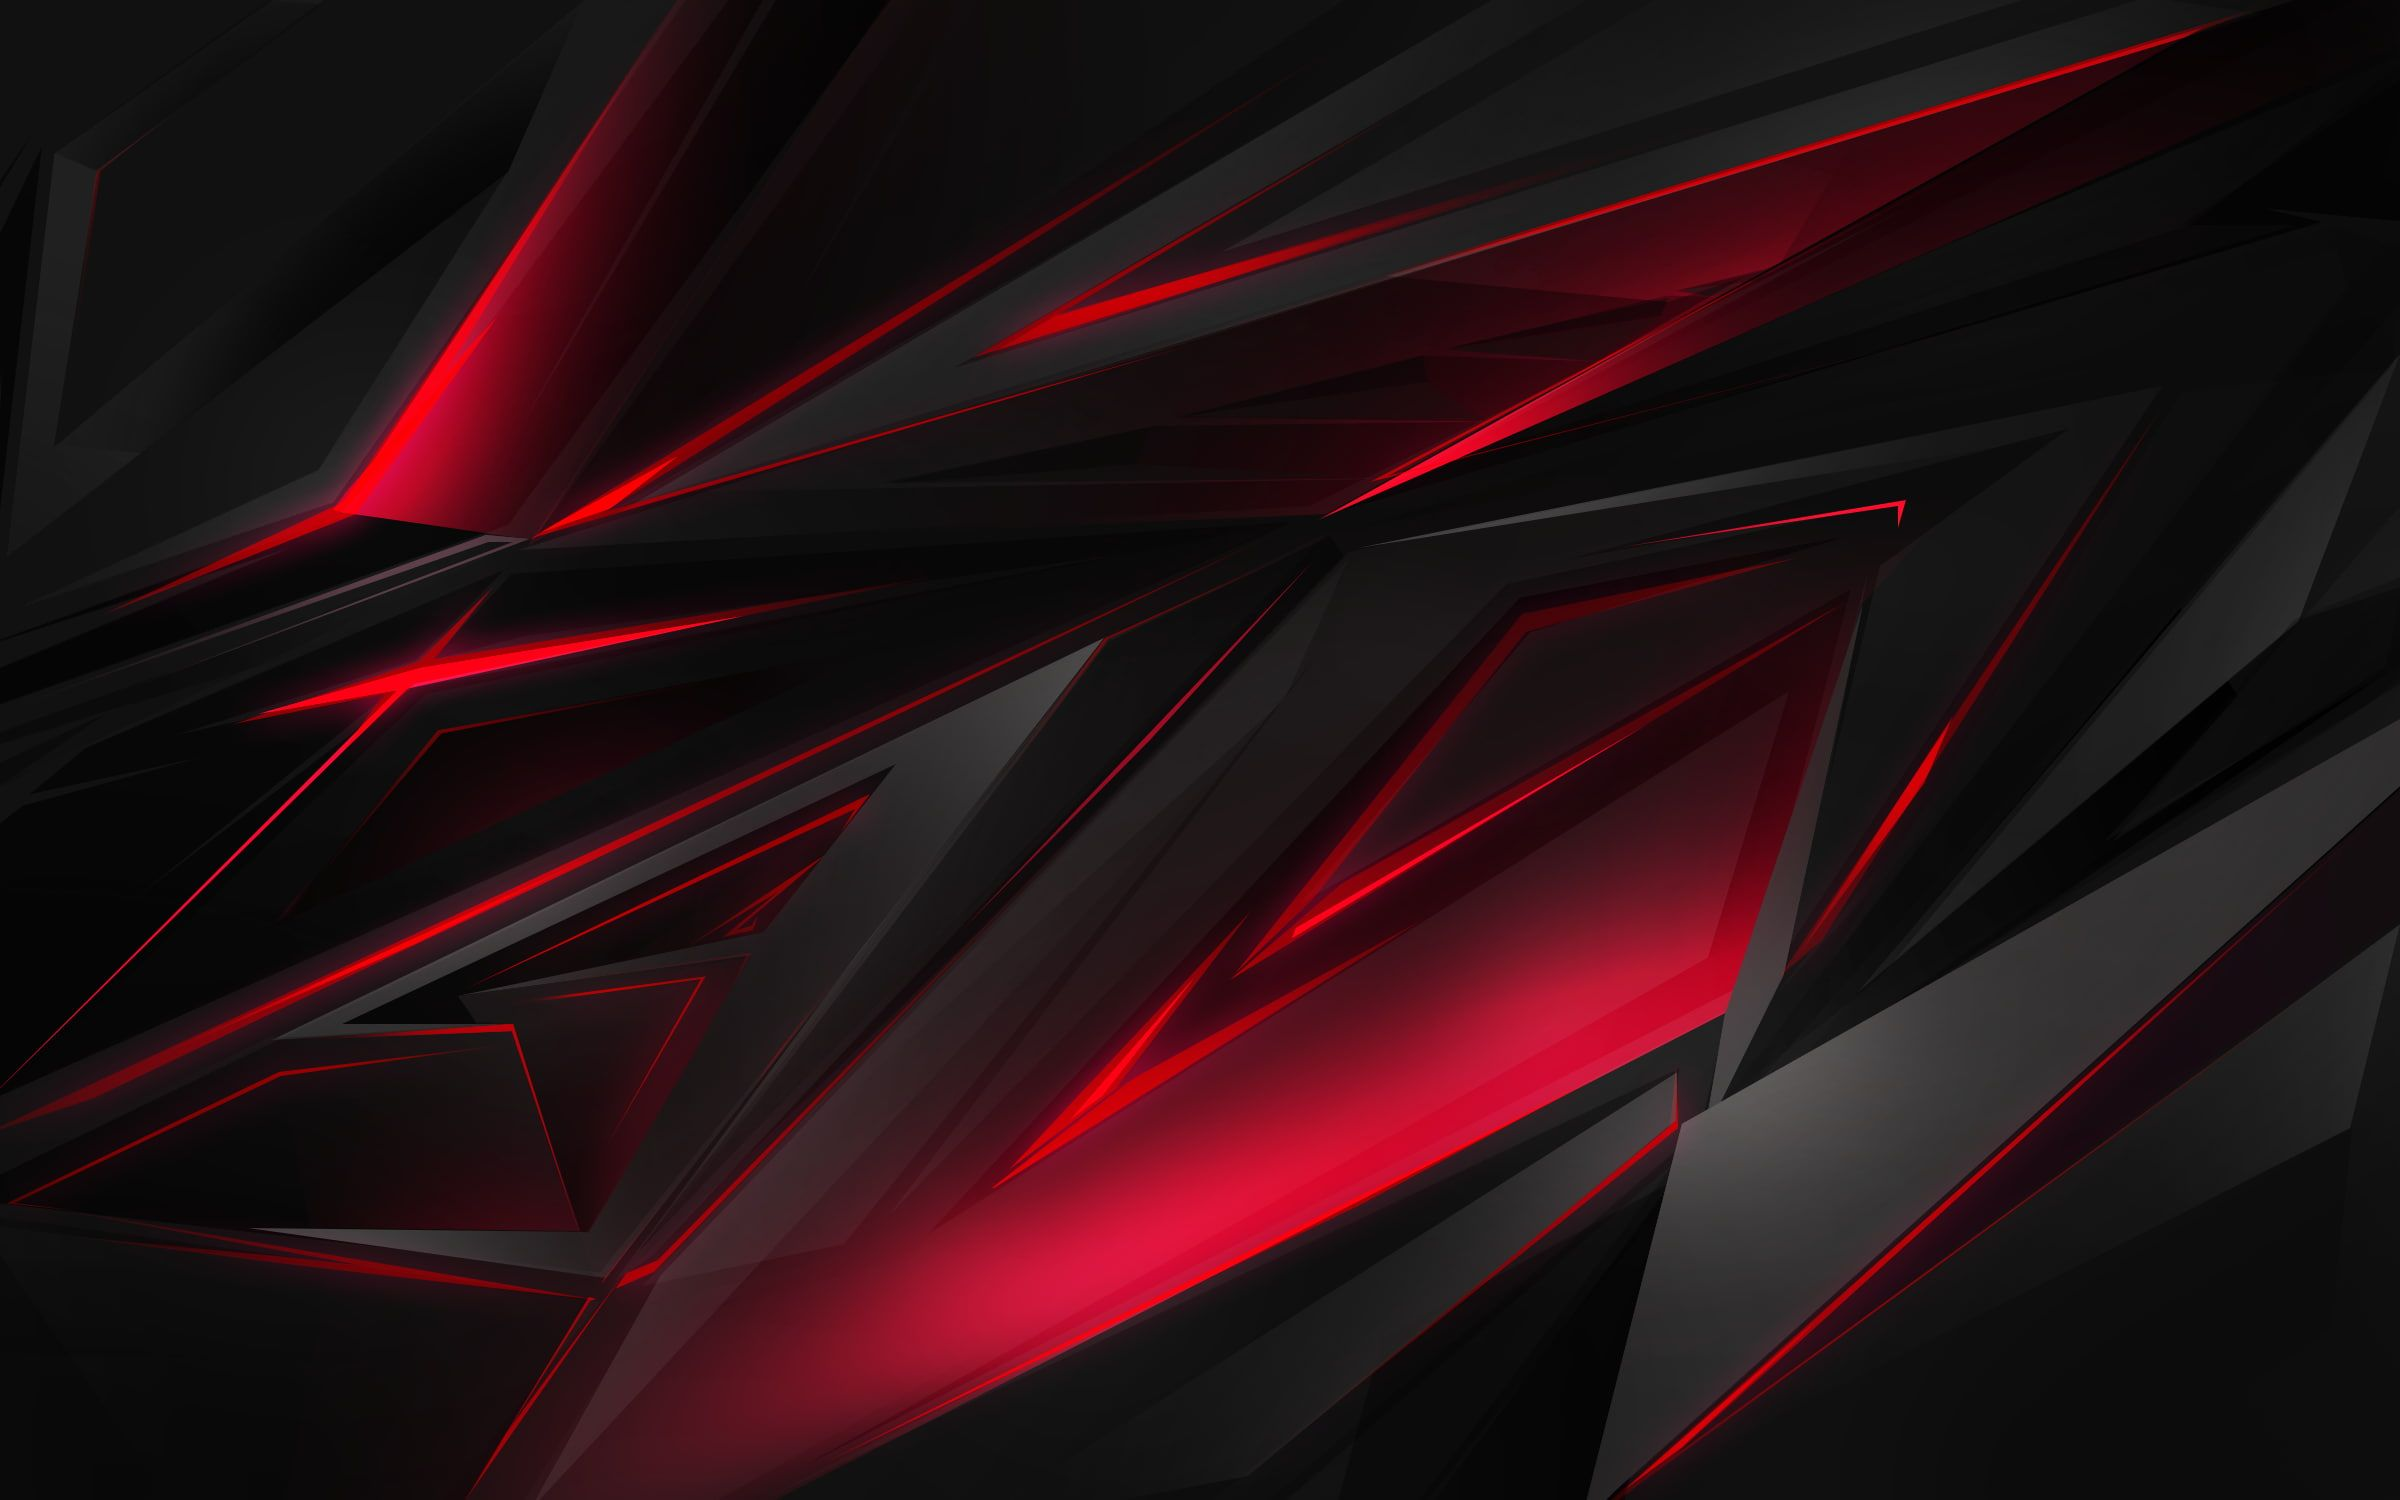 Abstract 3d Digital Art Dark Red Black 1080p Wallpaper Hdwallpaper Desktop Abstract Wallpaper Red Wallpaper Cool Wallpaper